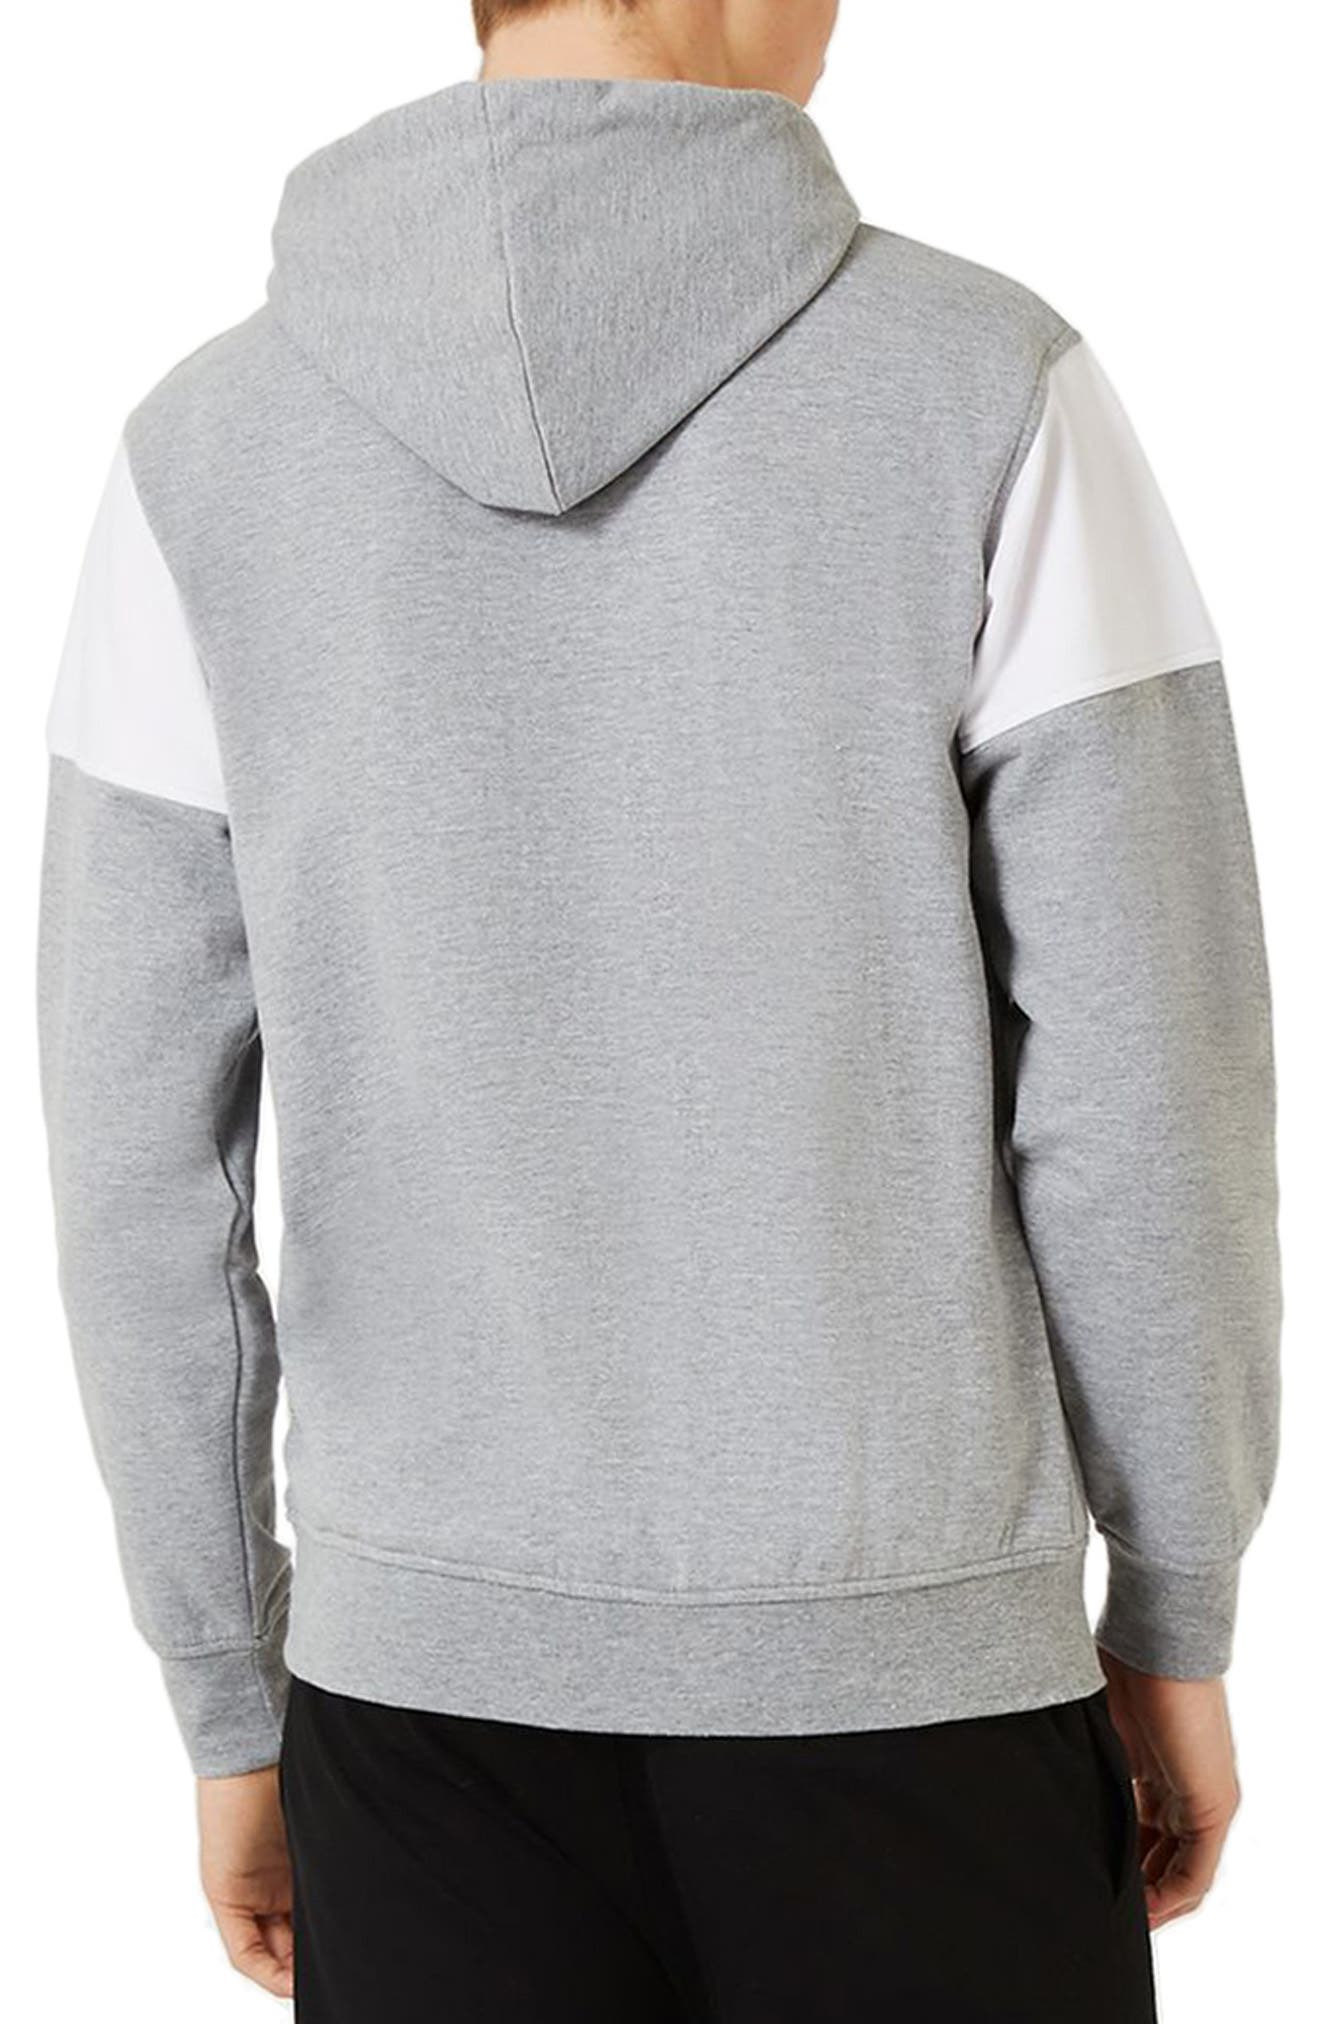 NICCE Slim Fit Colorblock Hoodie,                             Alternate thumbnail 2, color,                             050